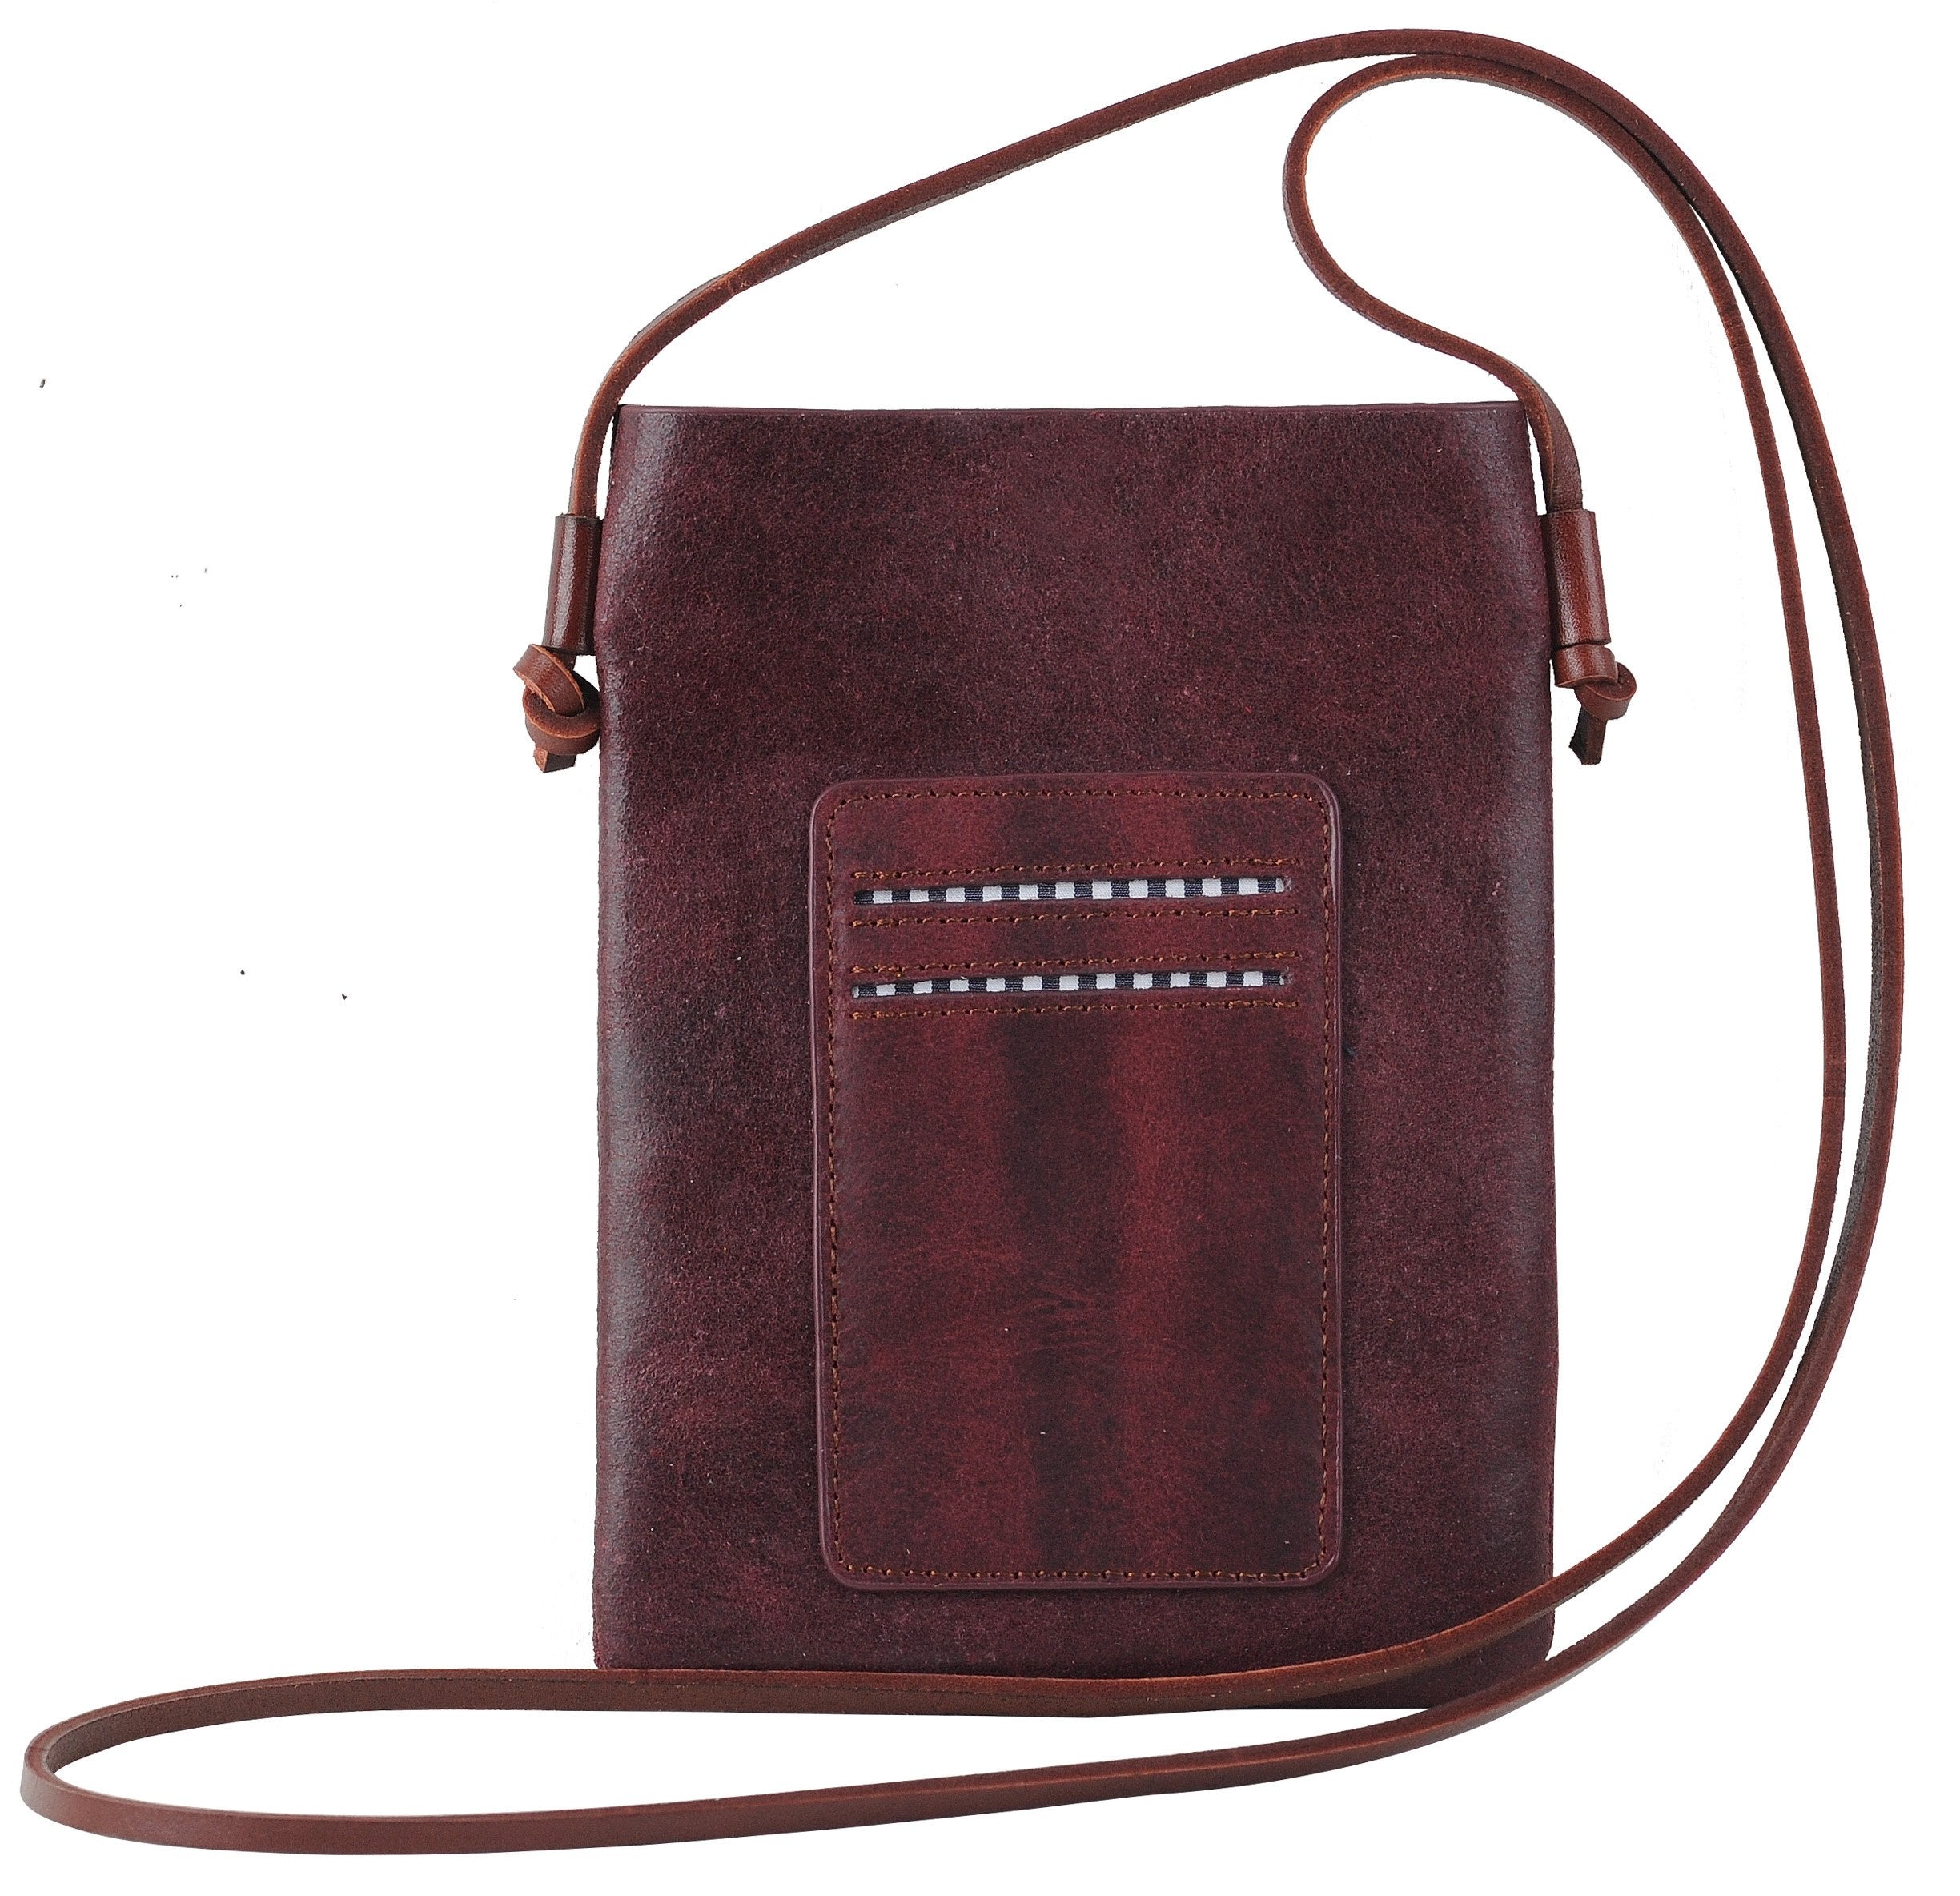 Most Wanted Cross Body